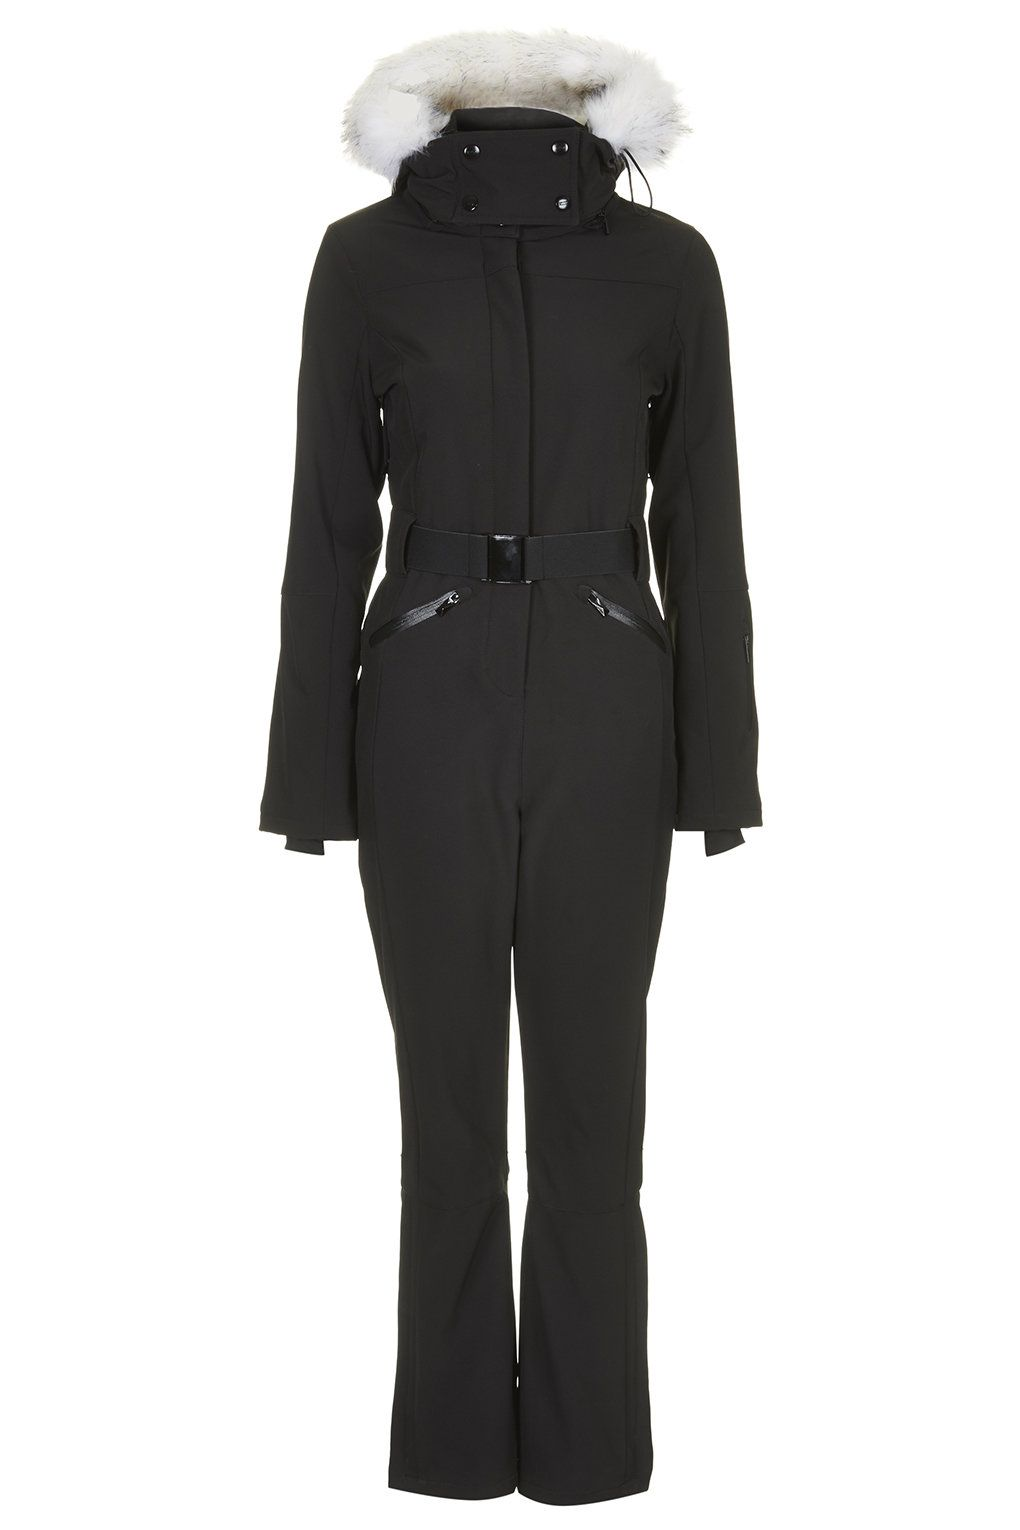 a1dd129833 Topshop - SNO All-in-one ski suit